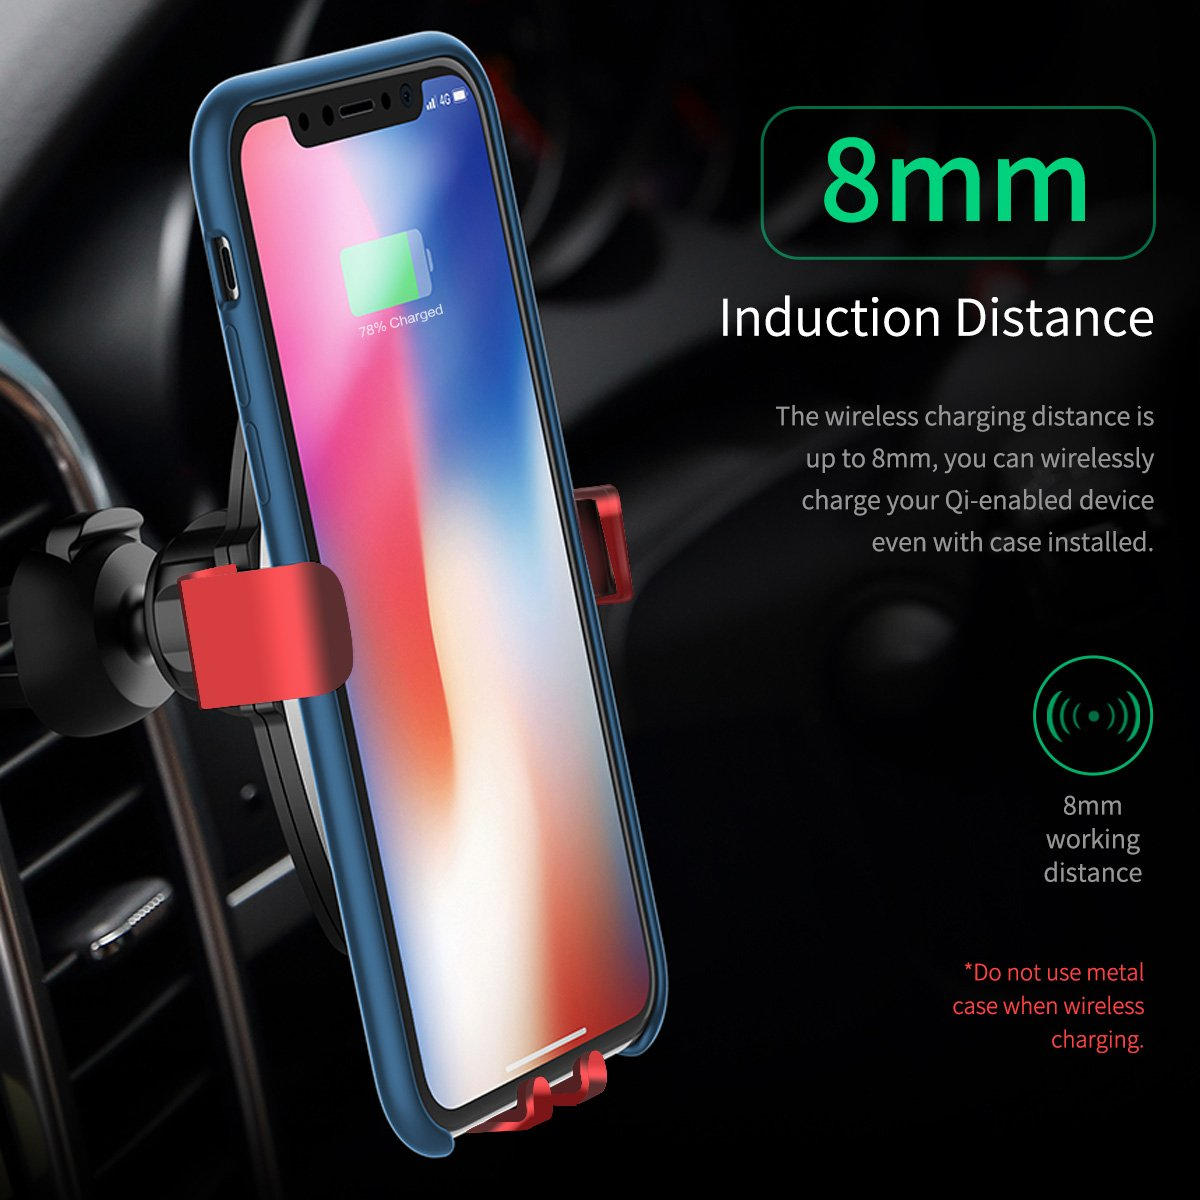 iPhone X Samsung Galaxy S8//S8+//Note 8//S7//S7 Edge and Other QI Enabled Devices More/&Better 4351483917 Wireless Car Charger Qi Wireless Charger Car Mount Gravity Phone Holder Compatible for Apple iPhone 8//8plus